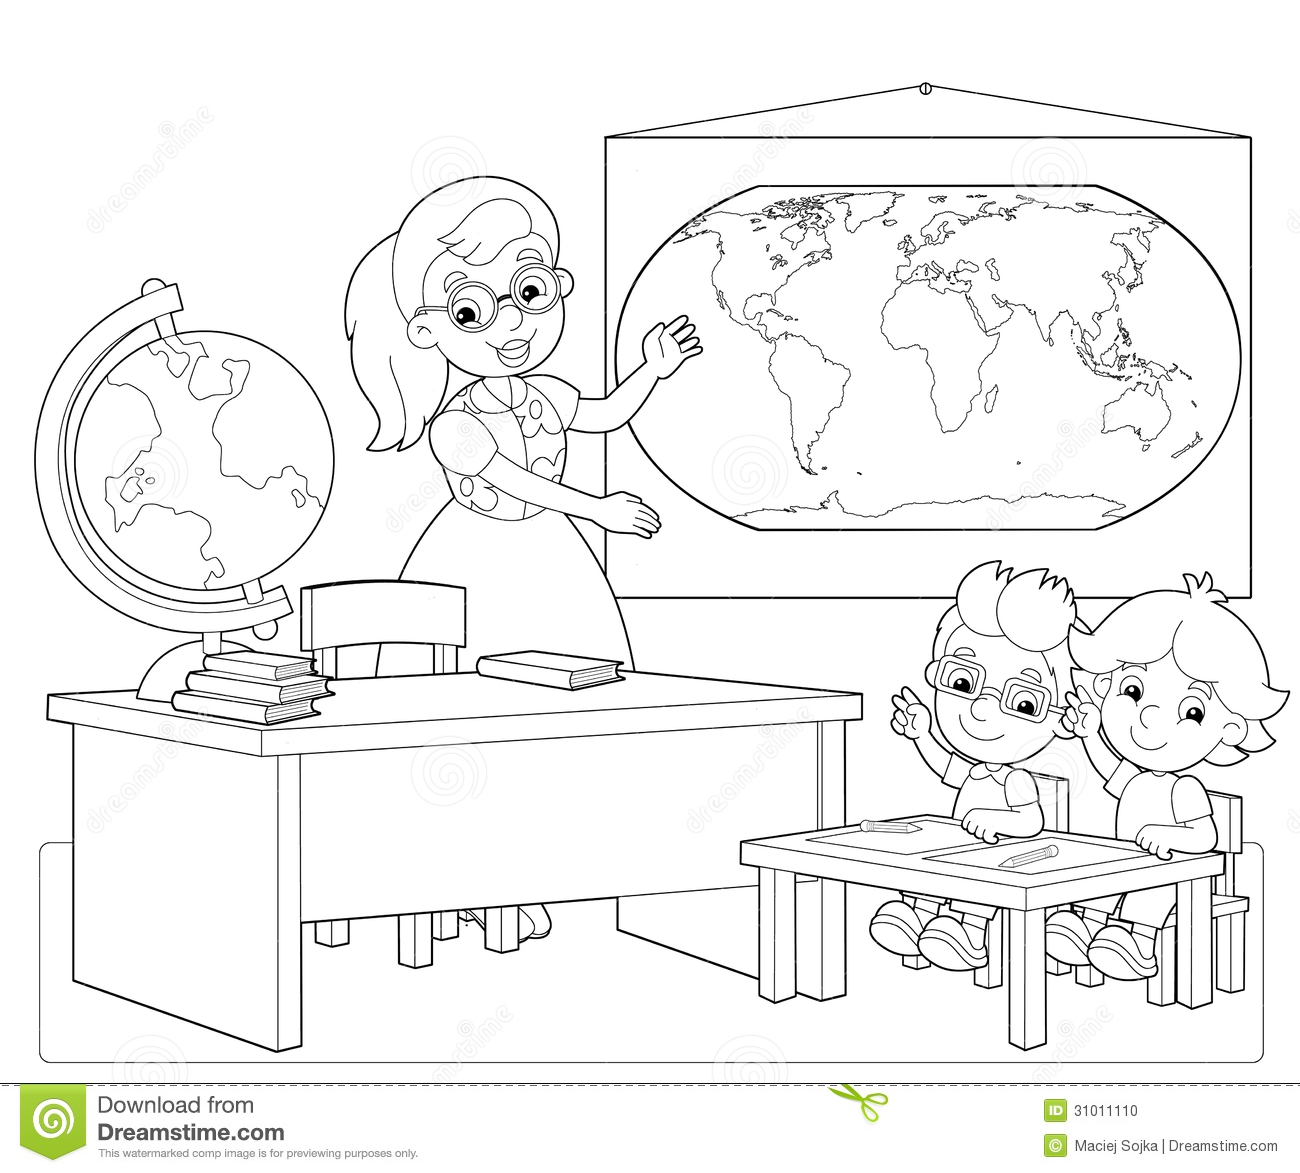 royalty free stock photo download the page with exercises for kids coloring book